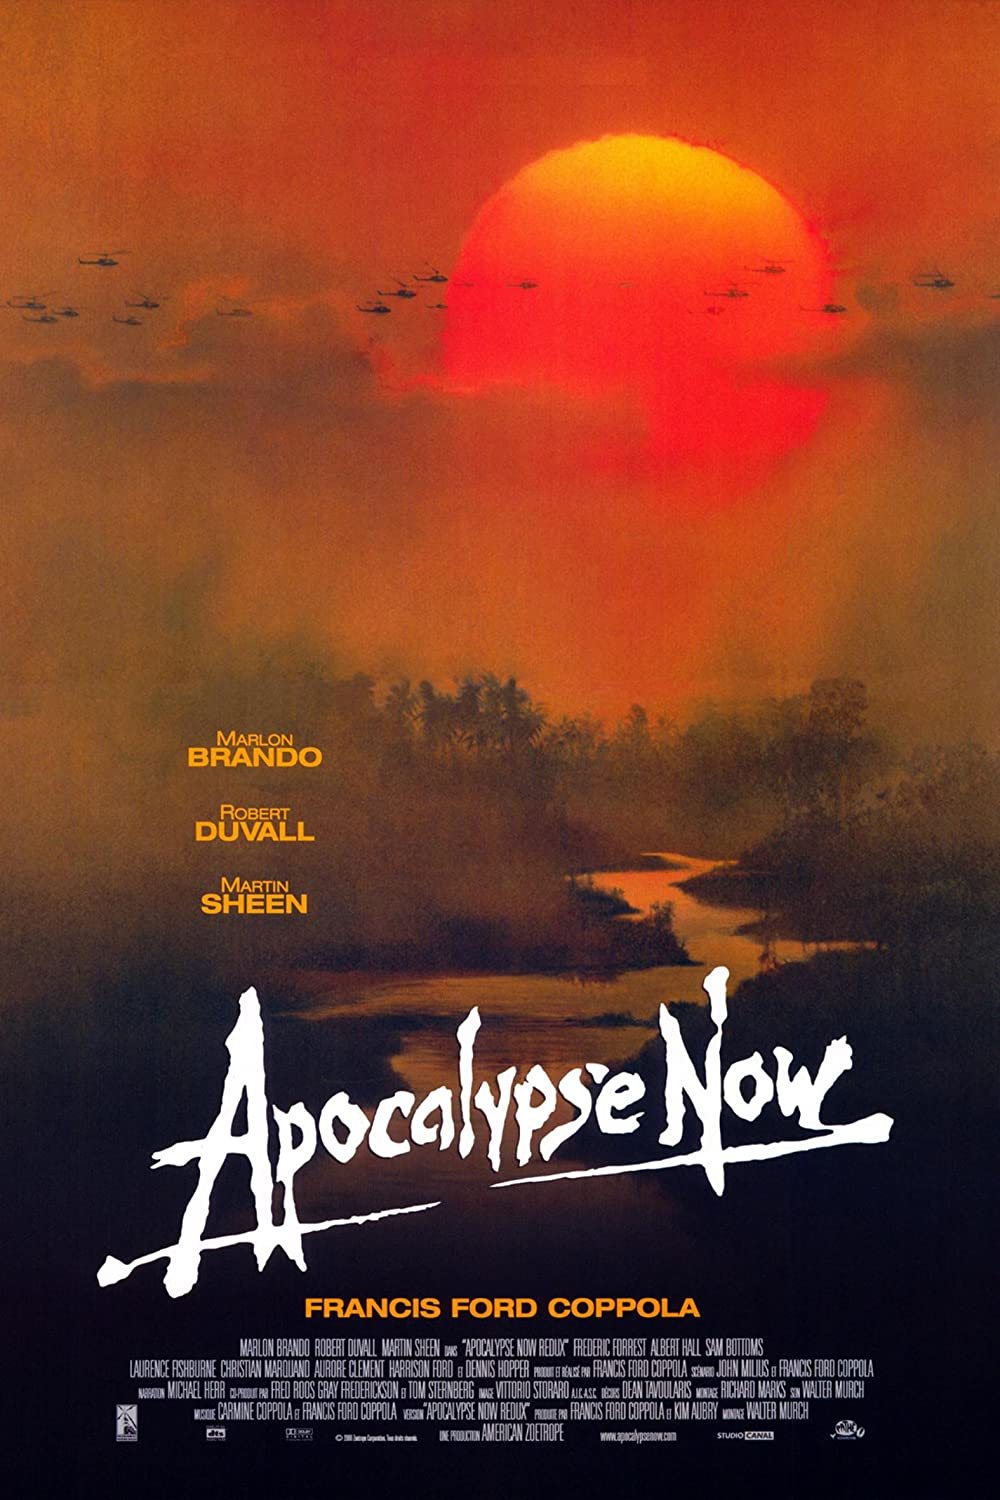 Apocalypse Now: Directed by Francis Ford Coppola. With Marlon Brando, Martin Sheen, Robert Duvall, Frederic Forrest. A U.S. Army officer serving in Vietnam is tasked with assassinating a renegade Special Forces Colonel who sees himself as a god.